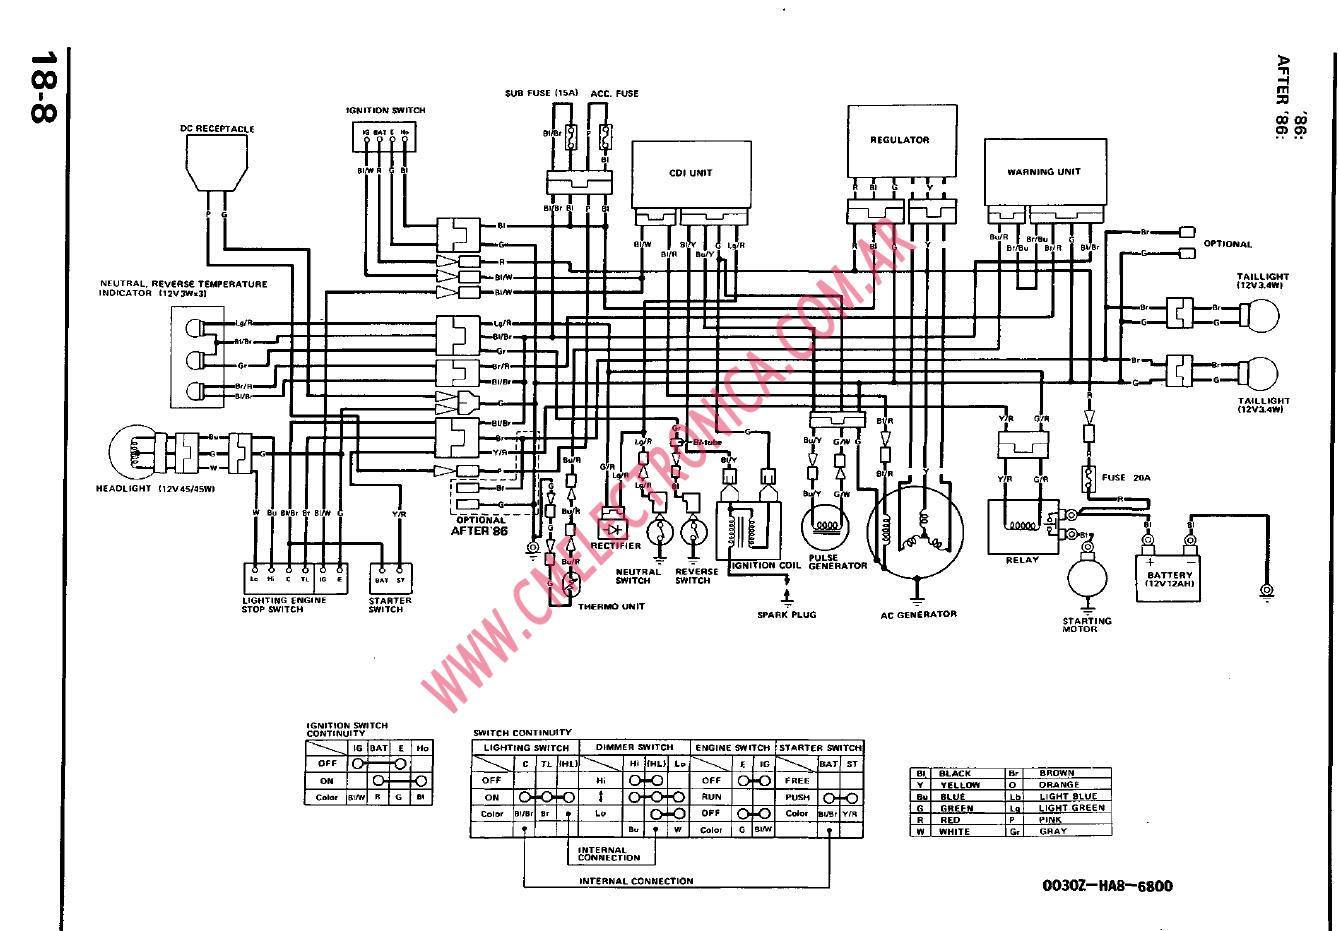 Electrical Wire Diagram Honda Ch 250 moreover Work Light Wiring Diagram furthermore 57ewi 2002 Montana Blows Cold Air Front Hot Air Back besides Honda Foreman 450 Wiring Diagram as well Pit Bike Headlight Wiring Diagram. on crf450x wire diagram